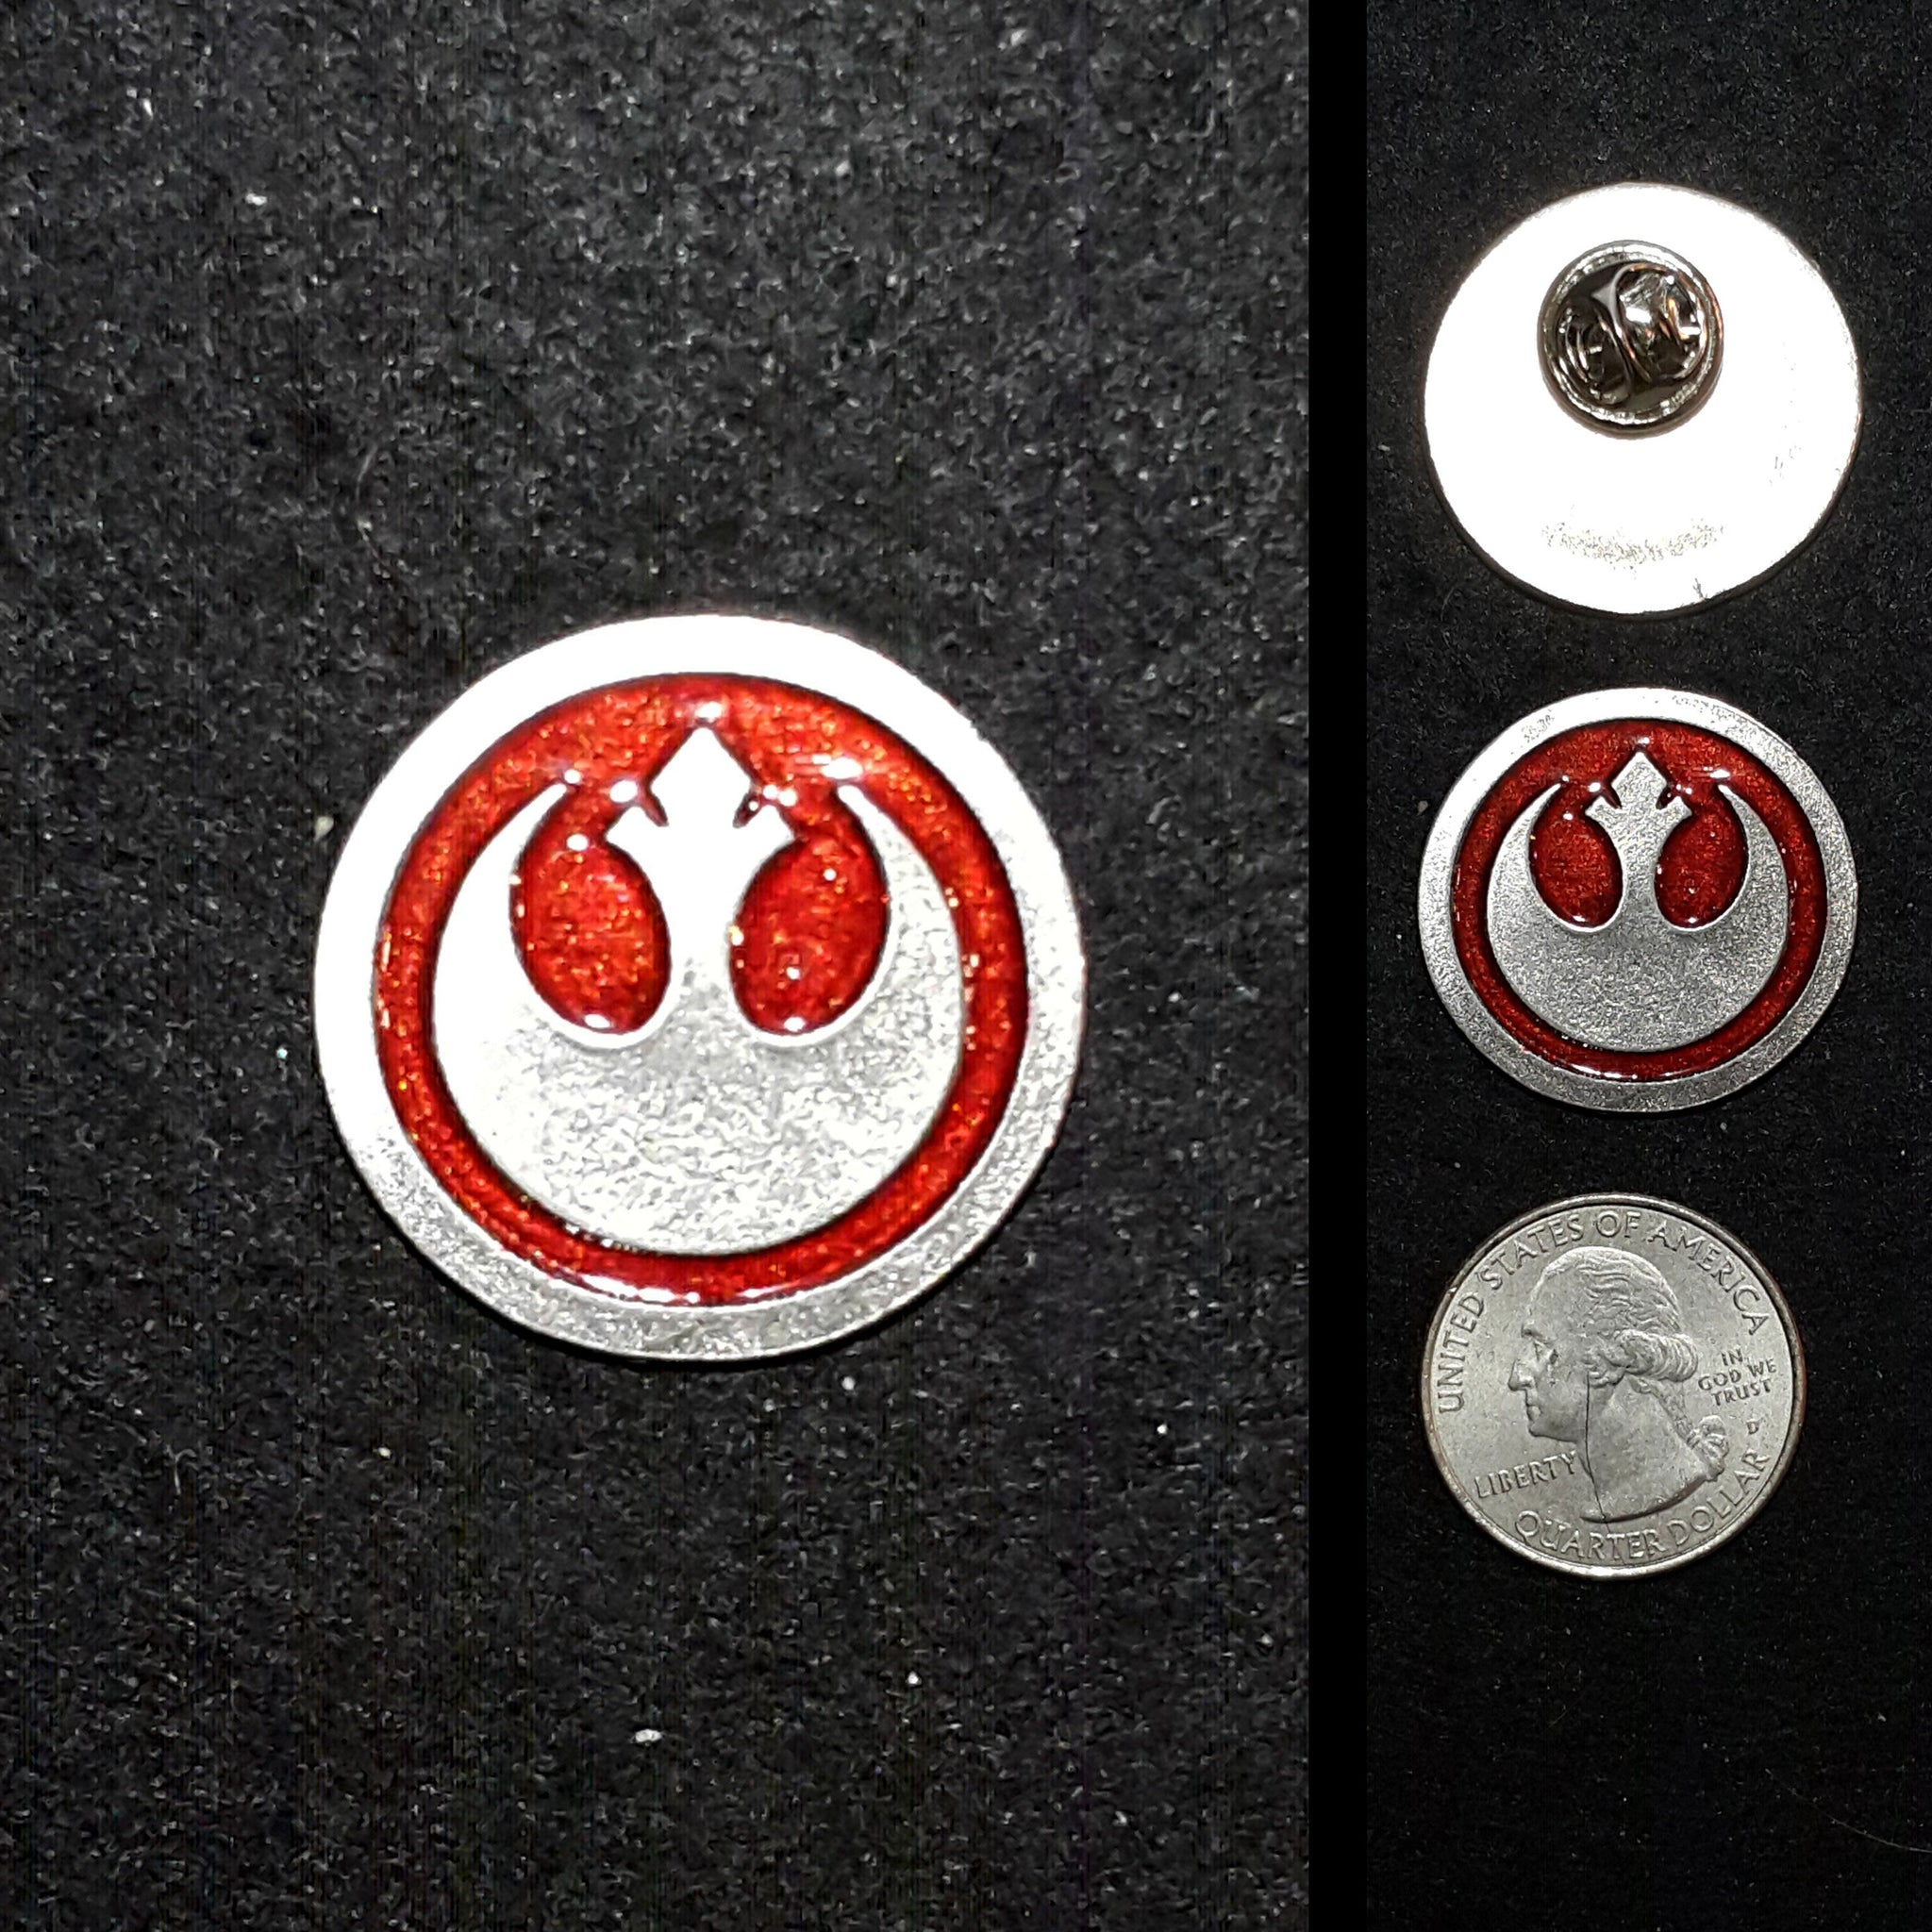 Rebel Alliance Pewter Lapel Pin